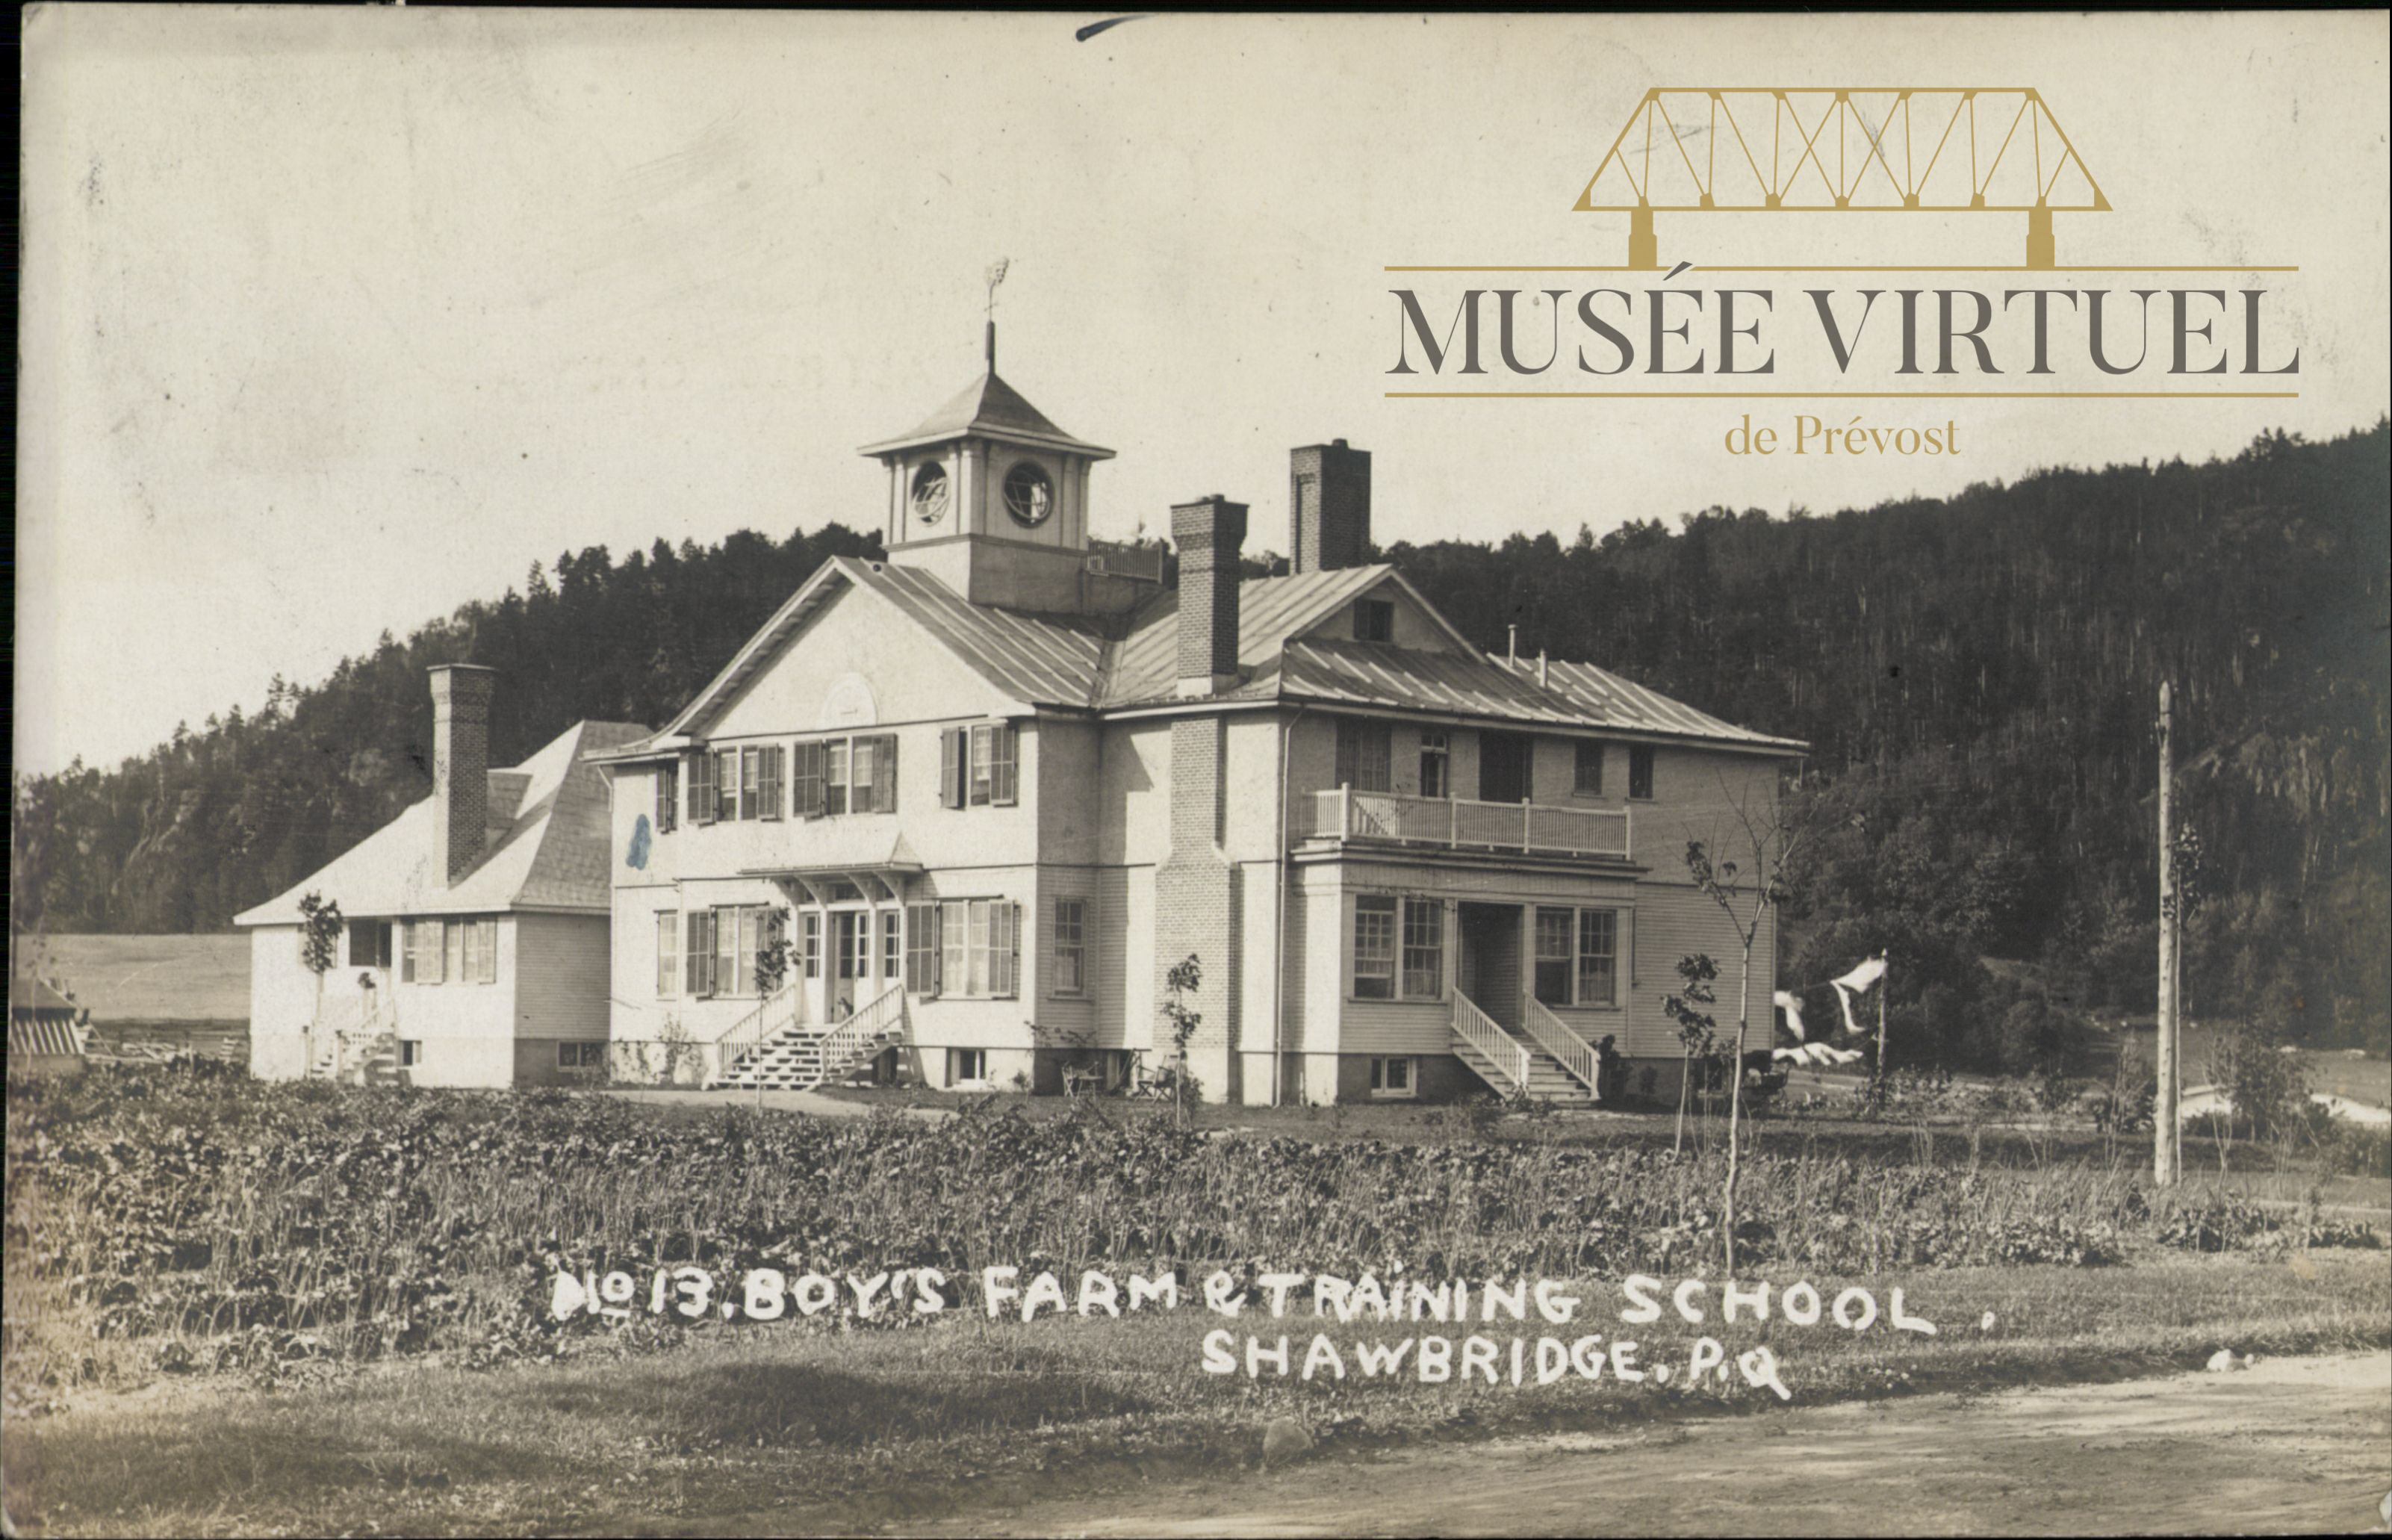 9. Le Boy's Farm & Training School - Collection de Bibliothèque et Archives nationales du Québec